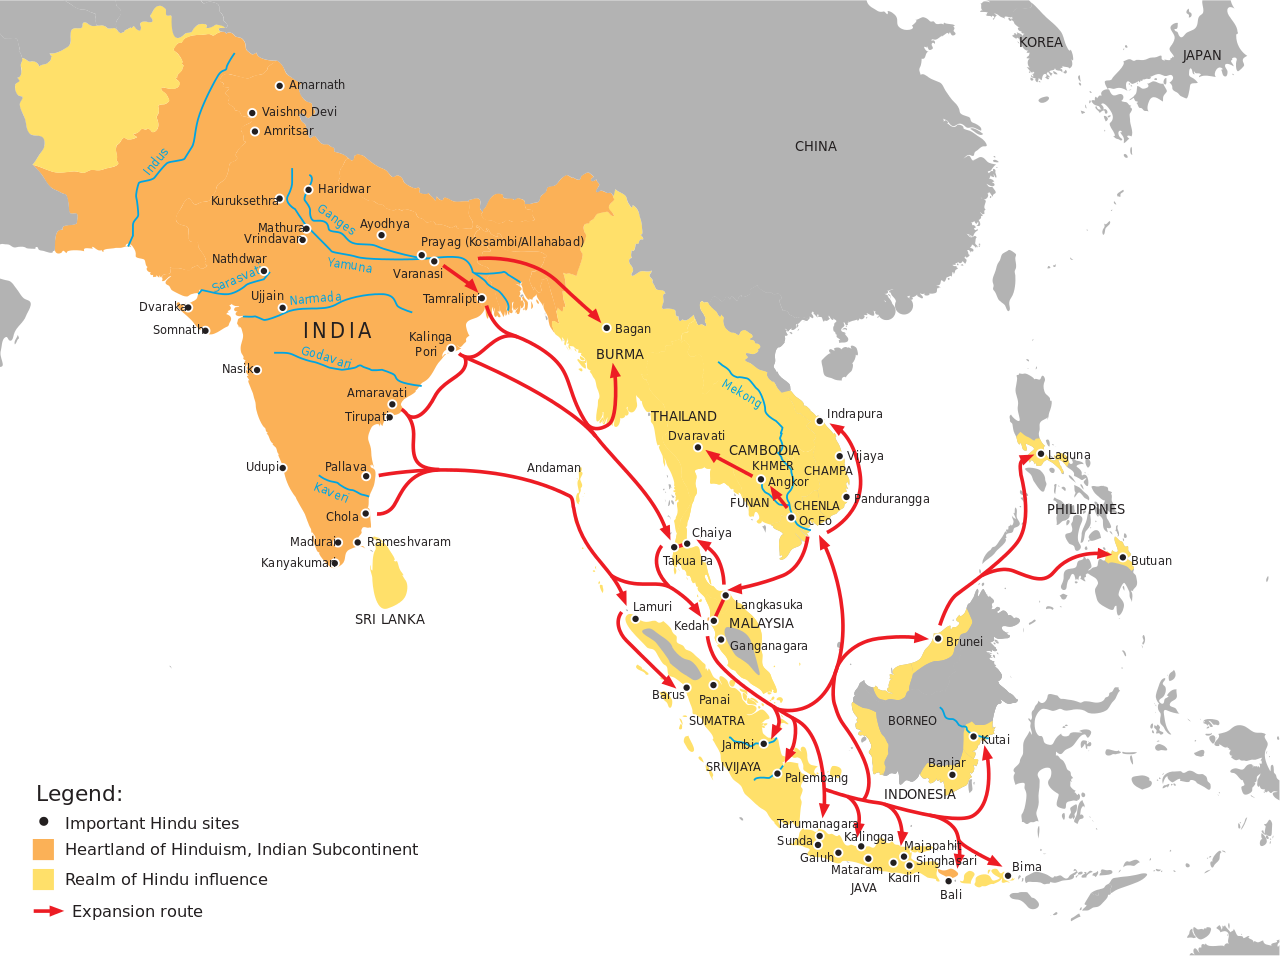 early religions of africa southeast asia and australia A review of recent research on dispersals by early modern humans from africa to asia by  southeast asia and australia  of religions / spiritual.